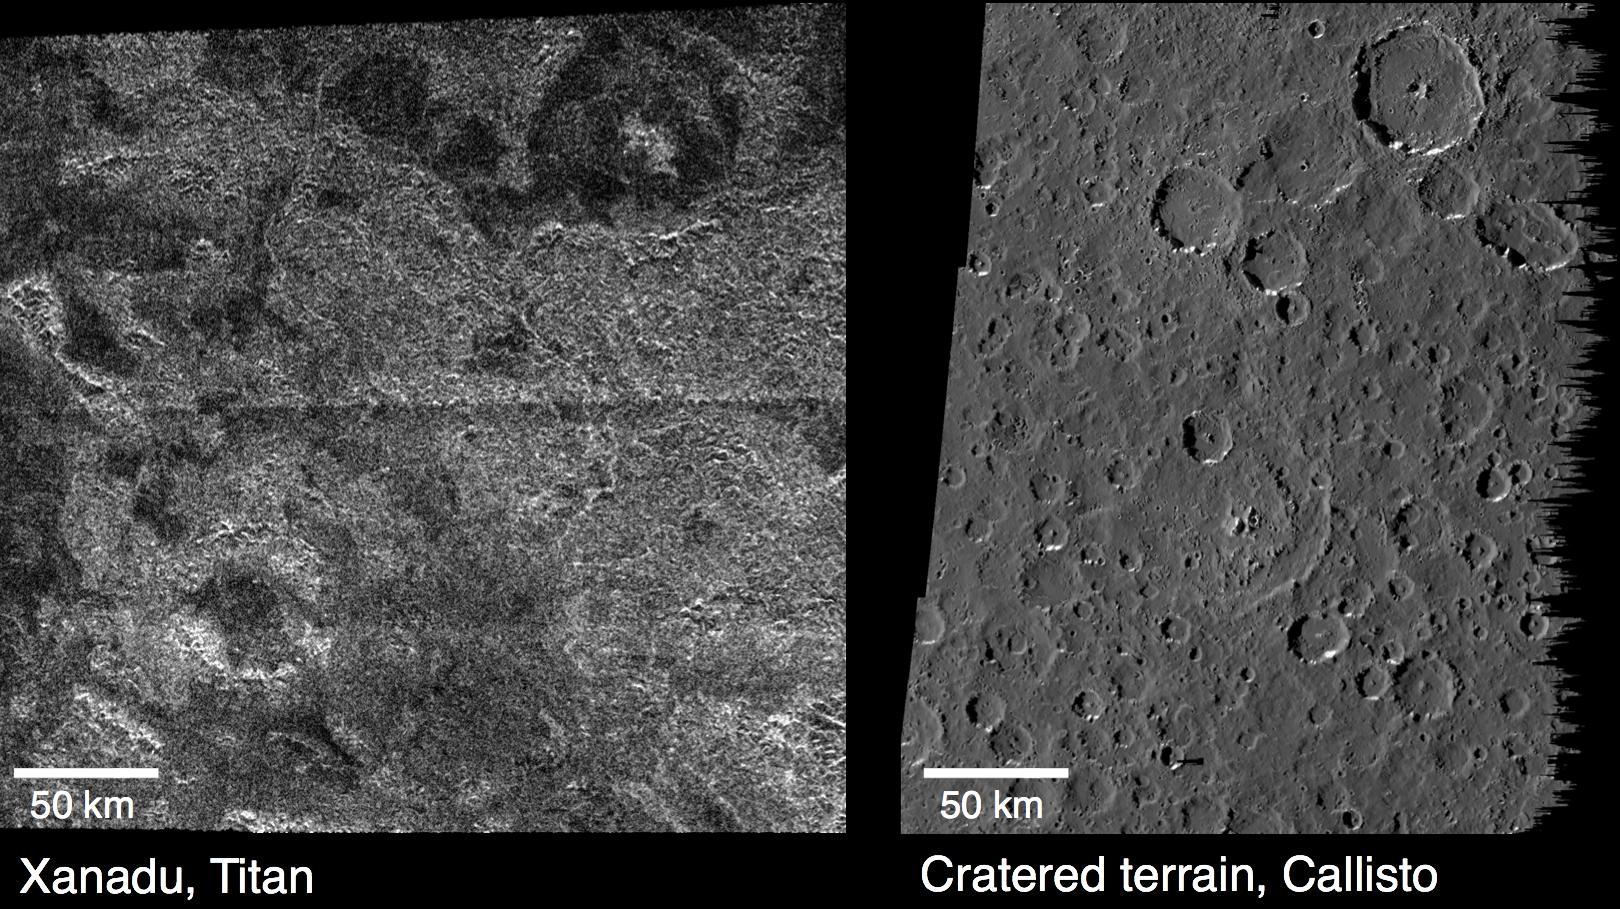 These images compare surface features observed by NASA's Cassini at the Xanadu region (left), and features observed by NASA's Galileo on Jupiter's moon Callisto (right).